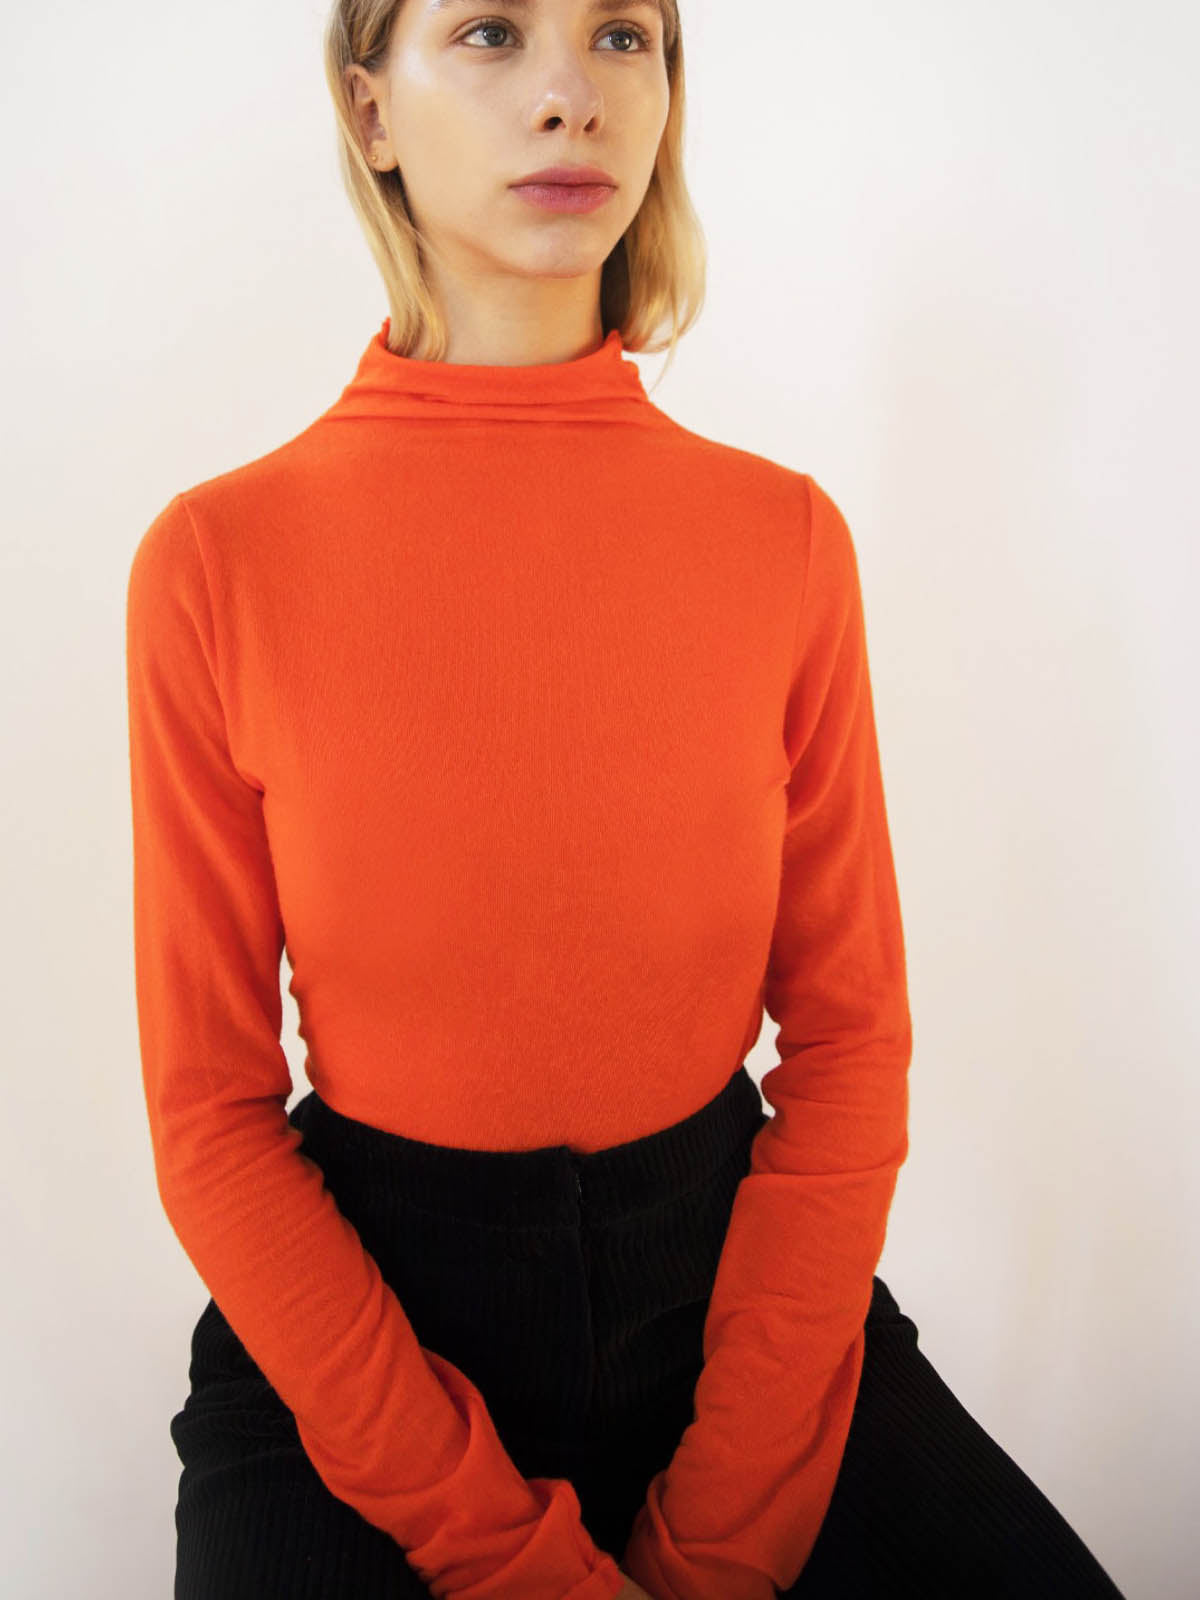 Emin + Paul Long Sleeve Turtleneck Top - Orange, Navy or Black, Tops, Emin + Paul, Blue Women - Blue Women's Clothing